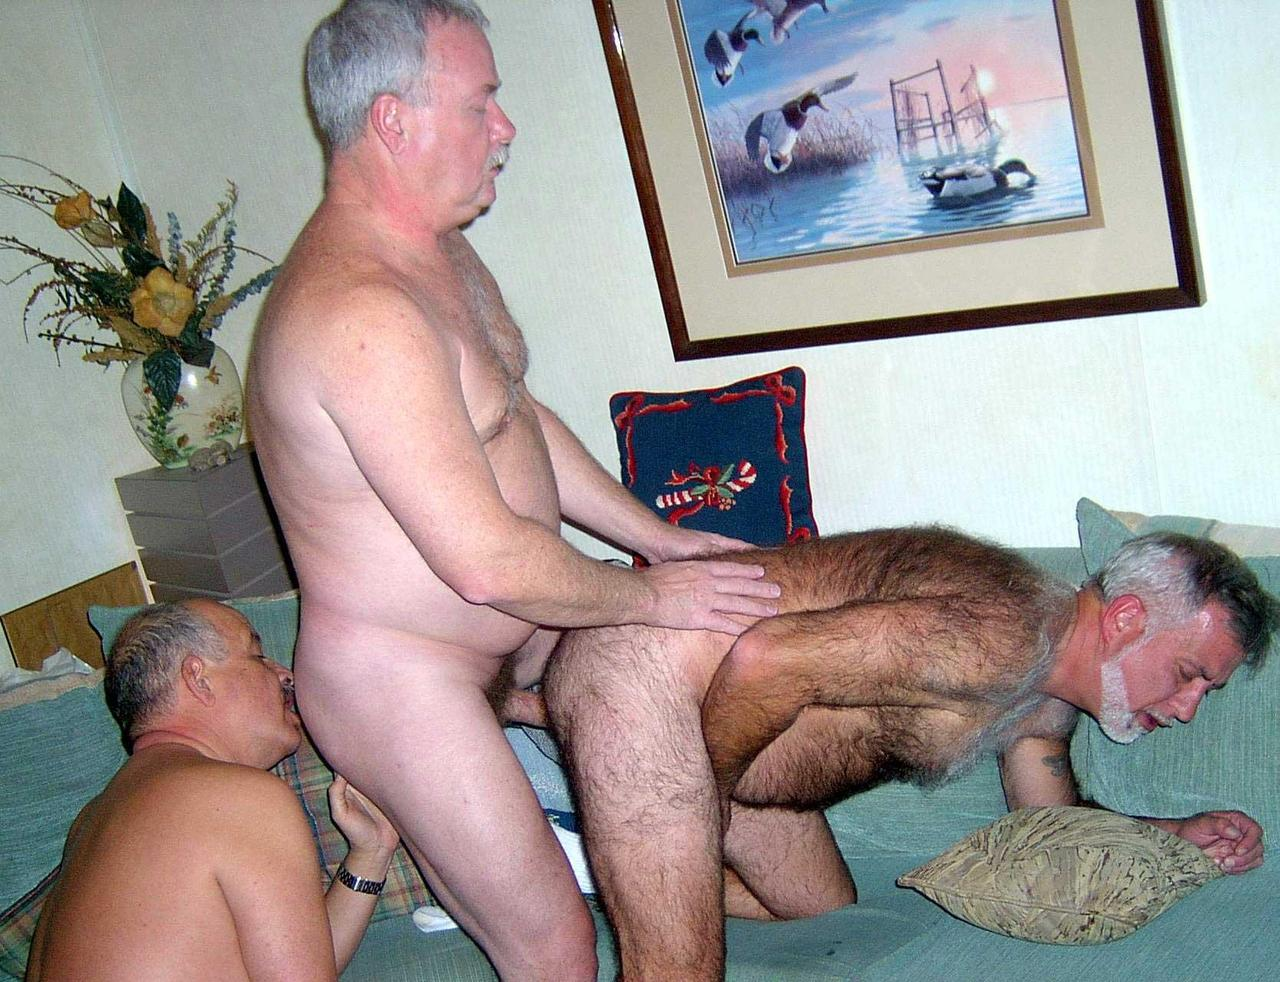 old-mens-gay-orgy-pictures-show